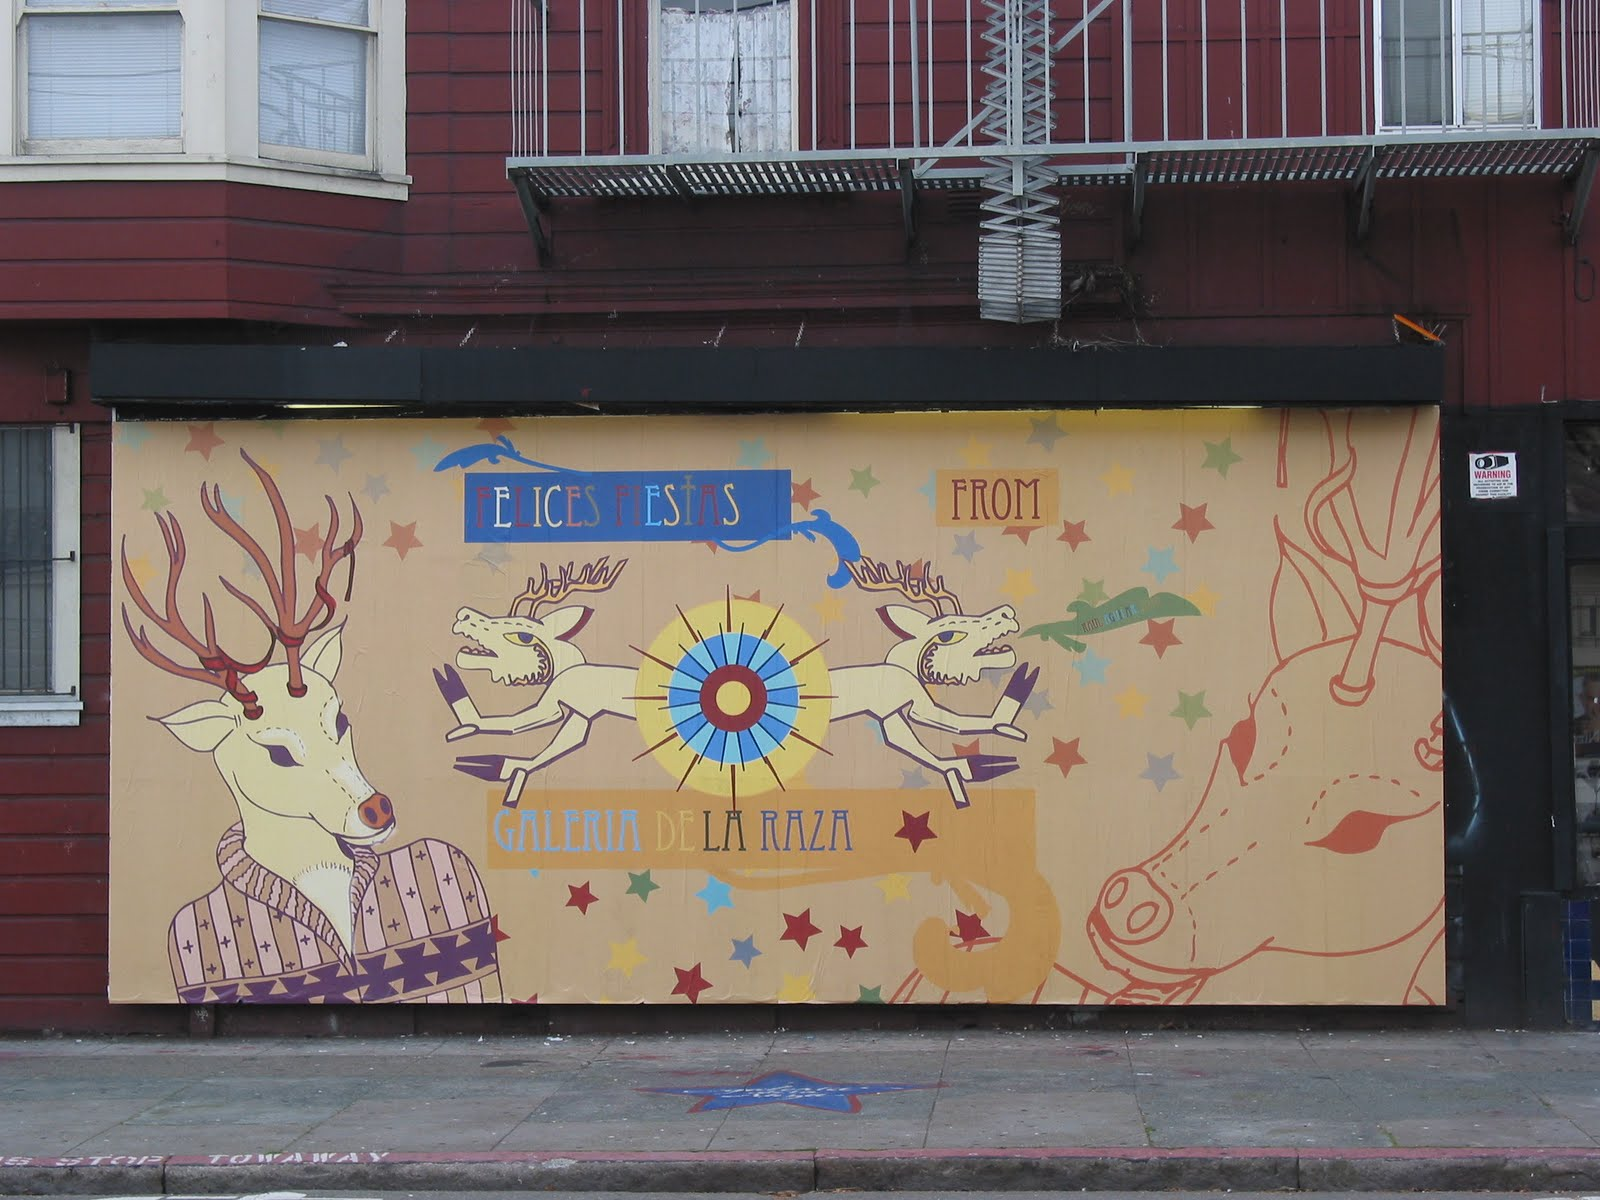 The Mission's Galería de la Raza is a nationally recognized arts organization founded in 1971 during the Mission's cultural and social renaissance.